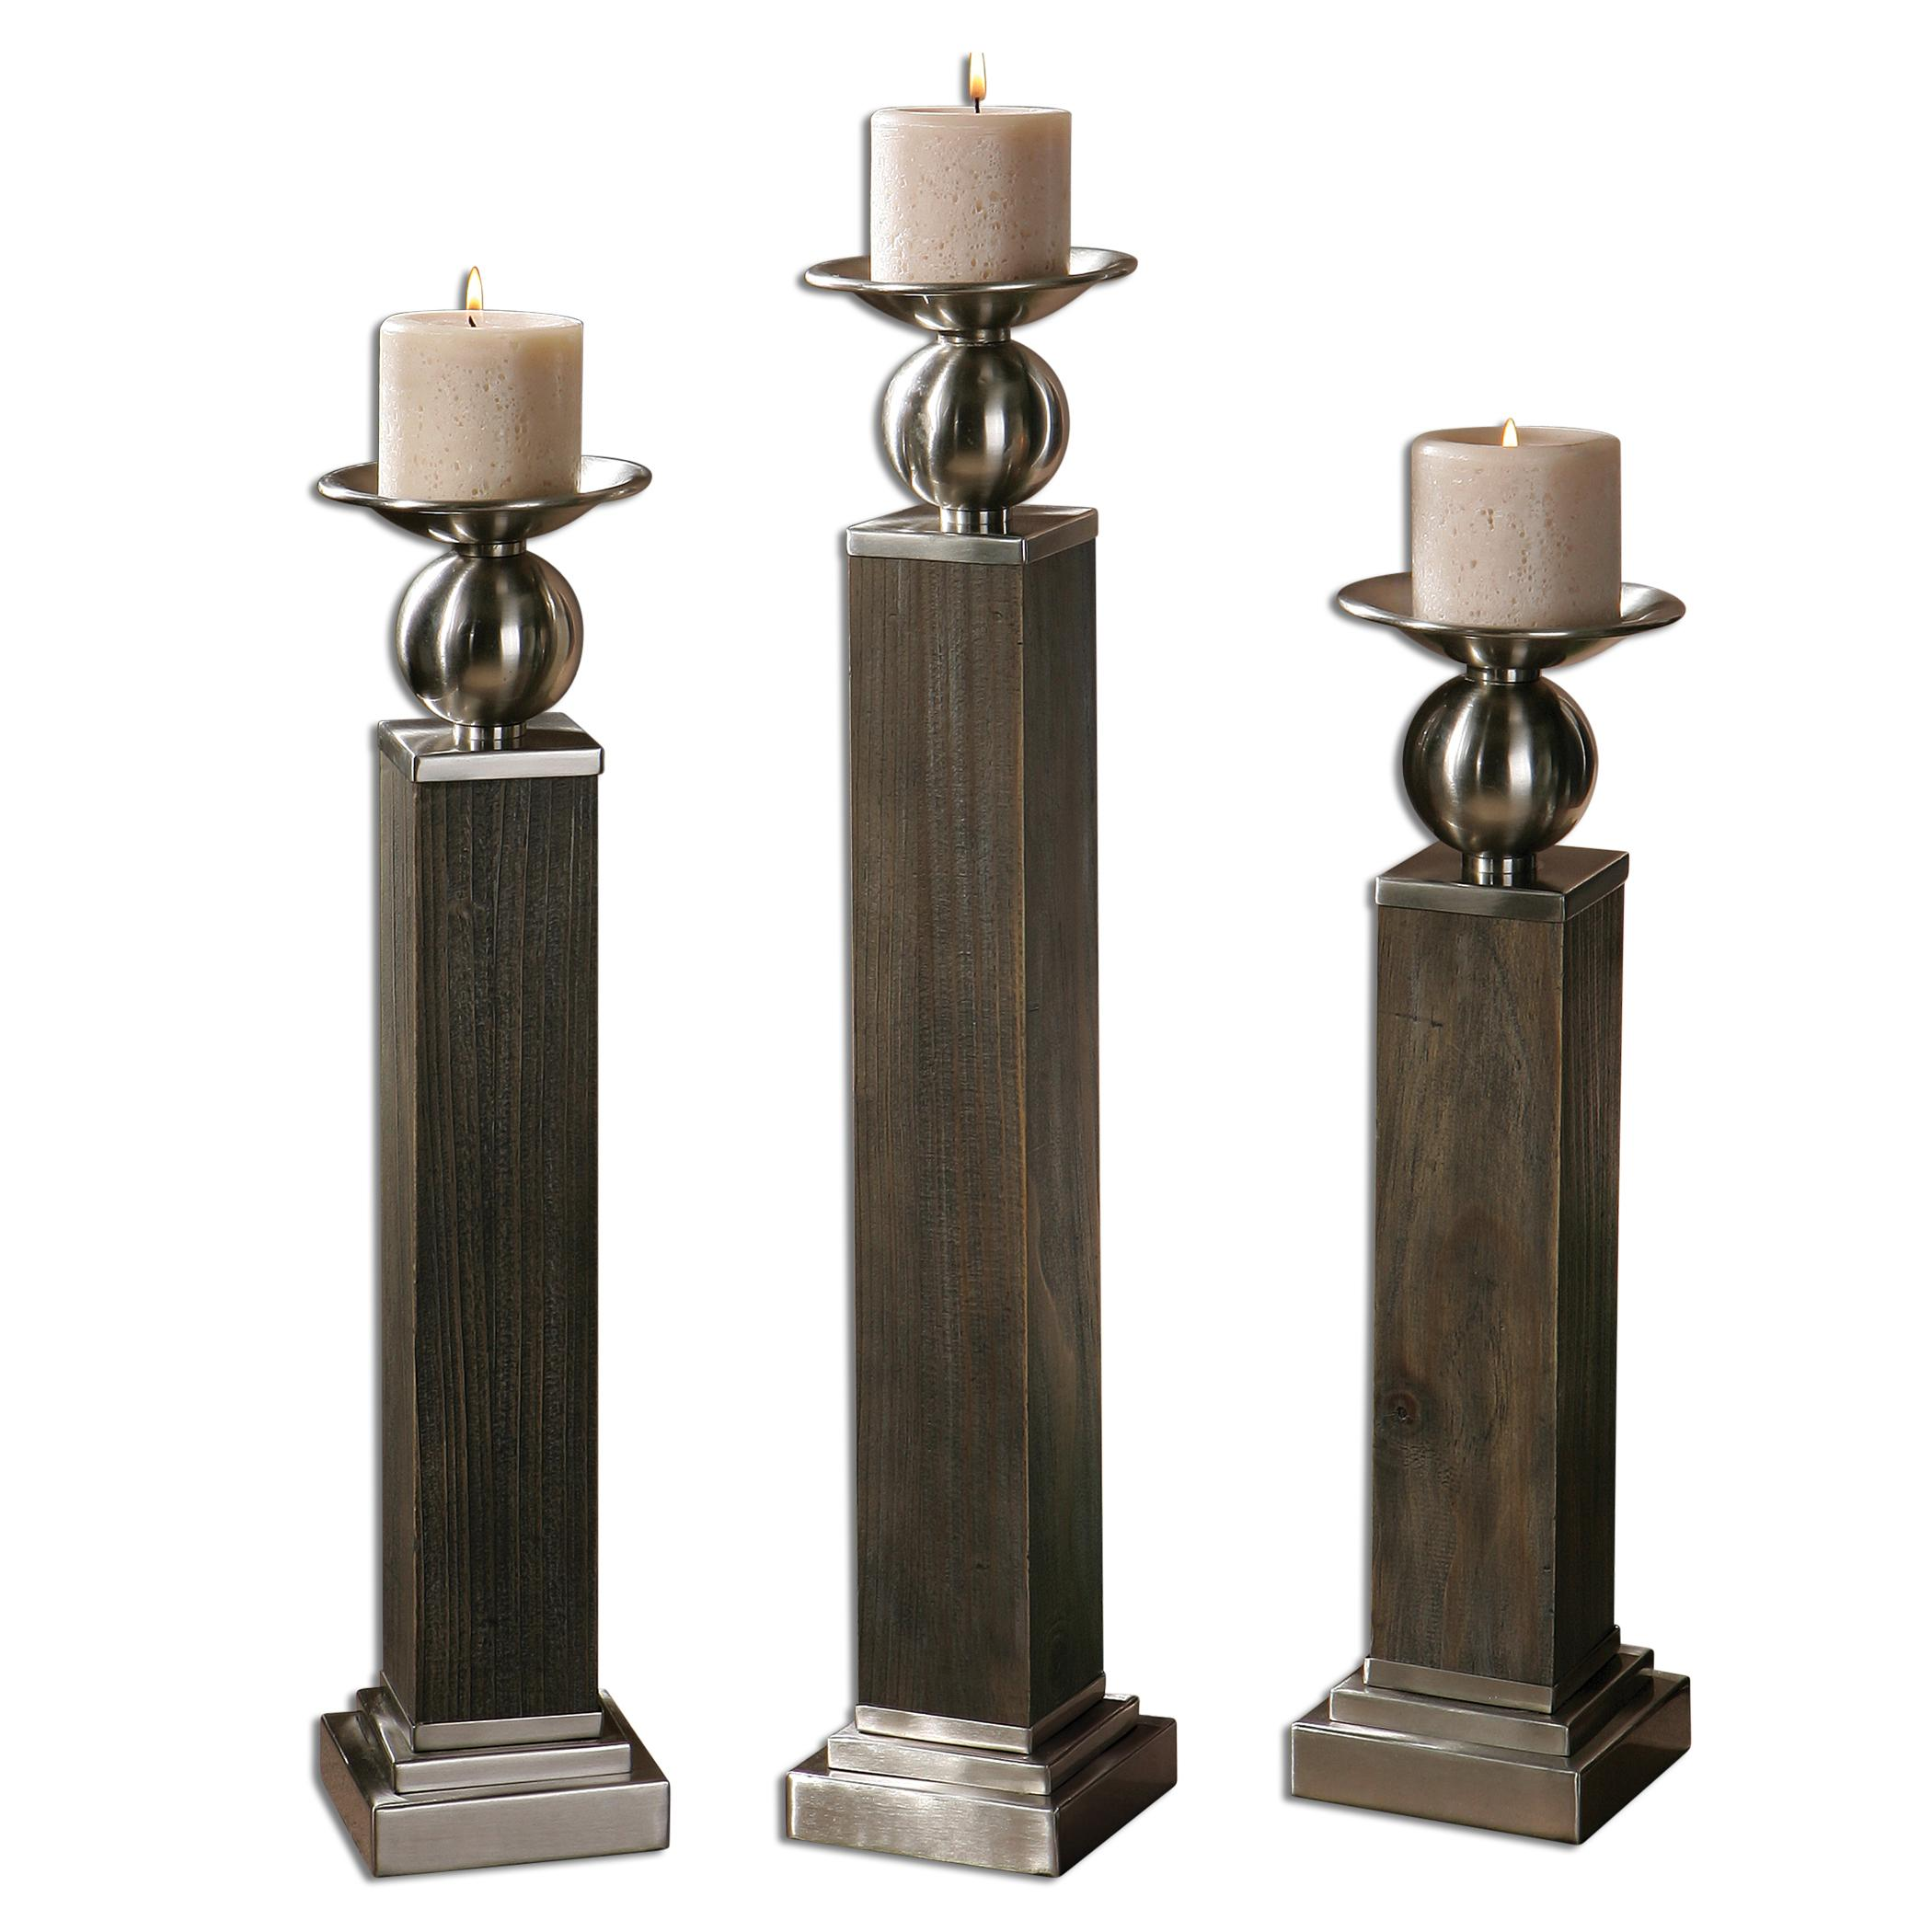 Uttermost Accessories Hestia Wood Candleholders, Set of  3 - Item Number: 19832